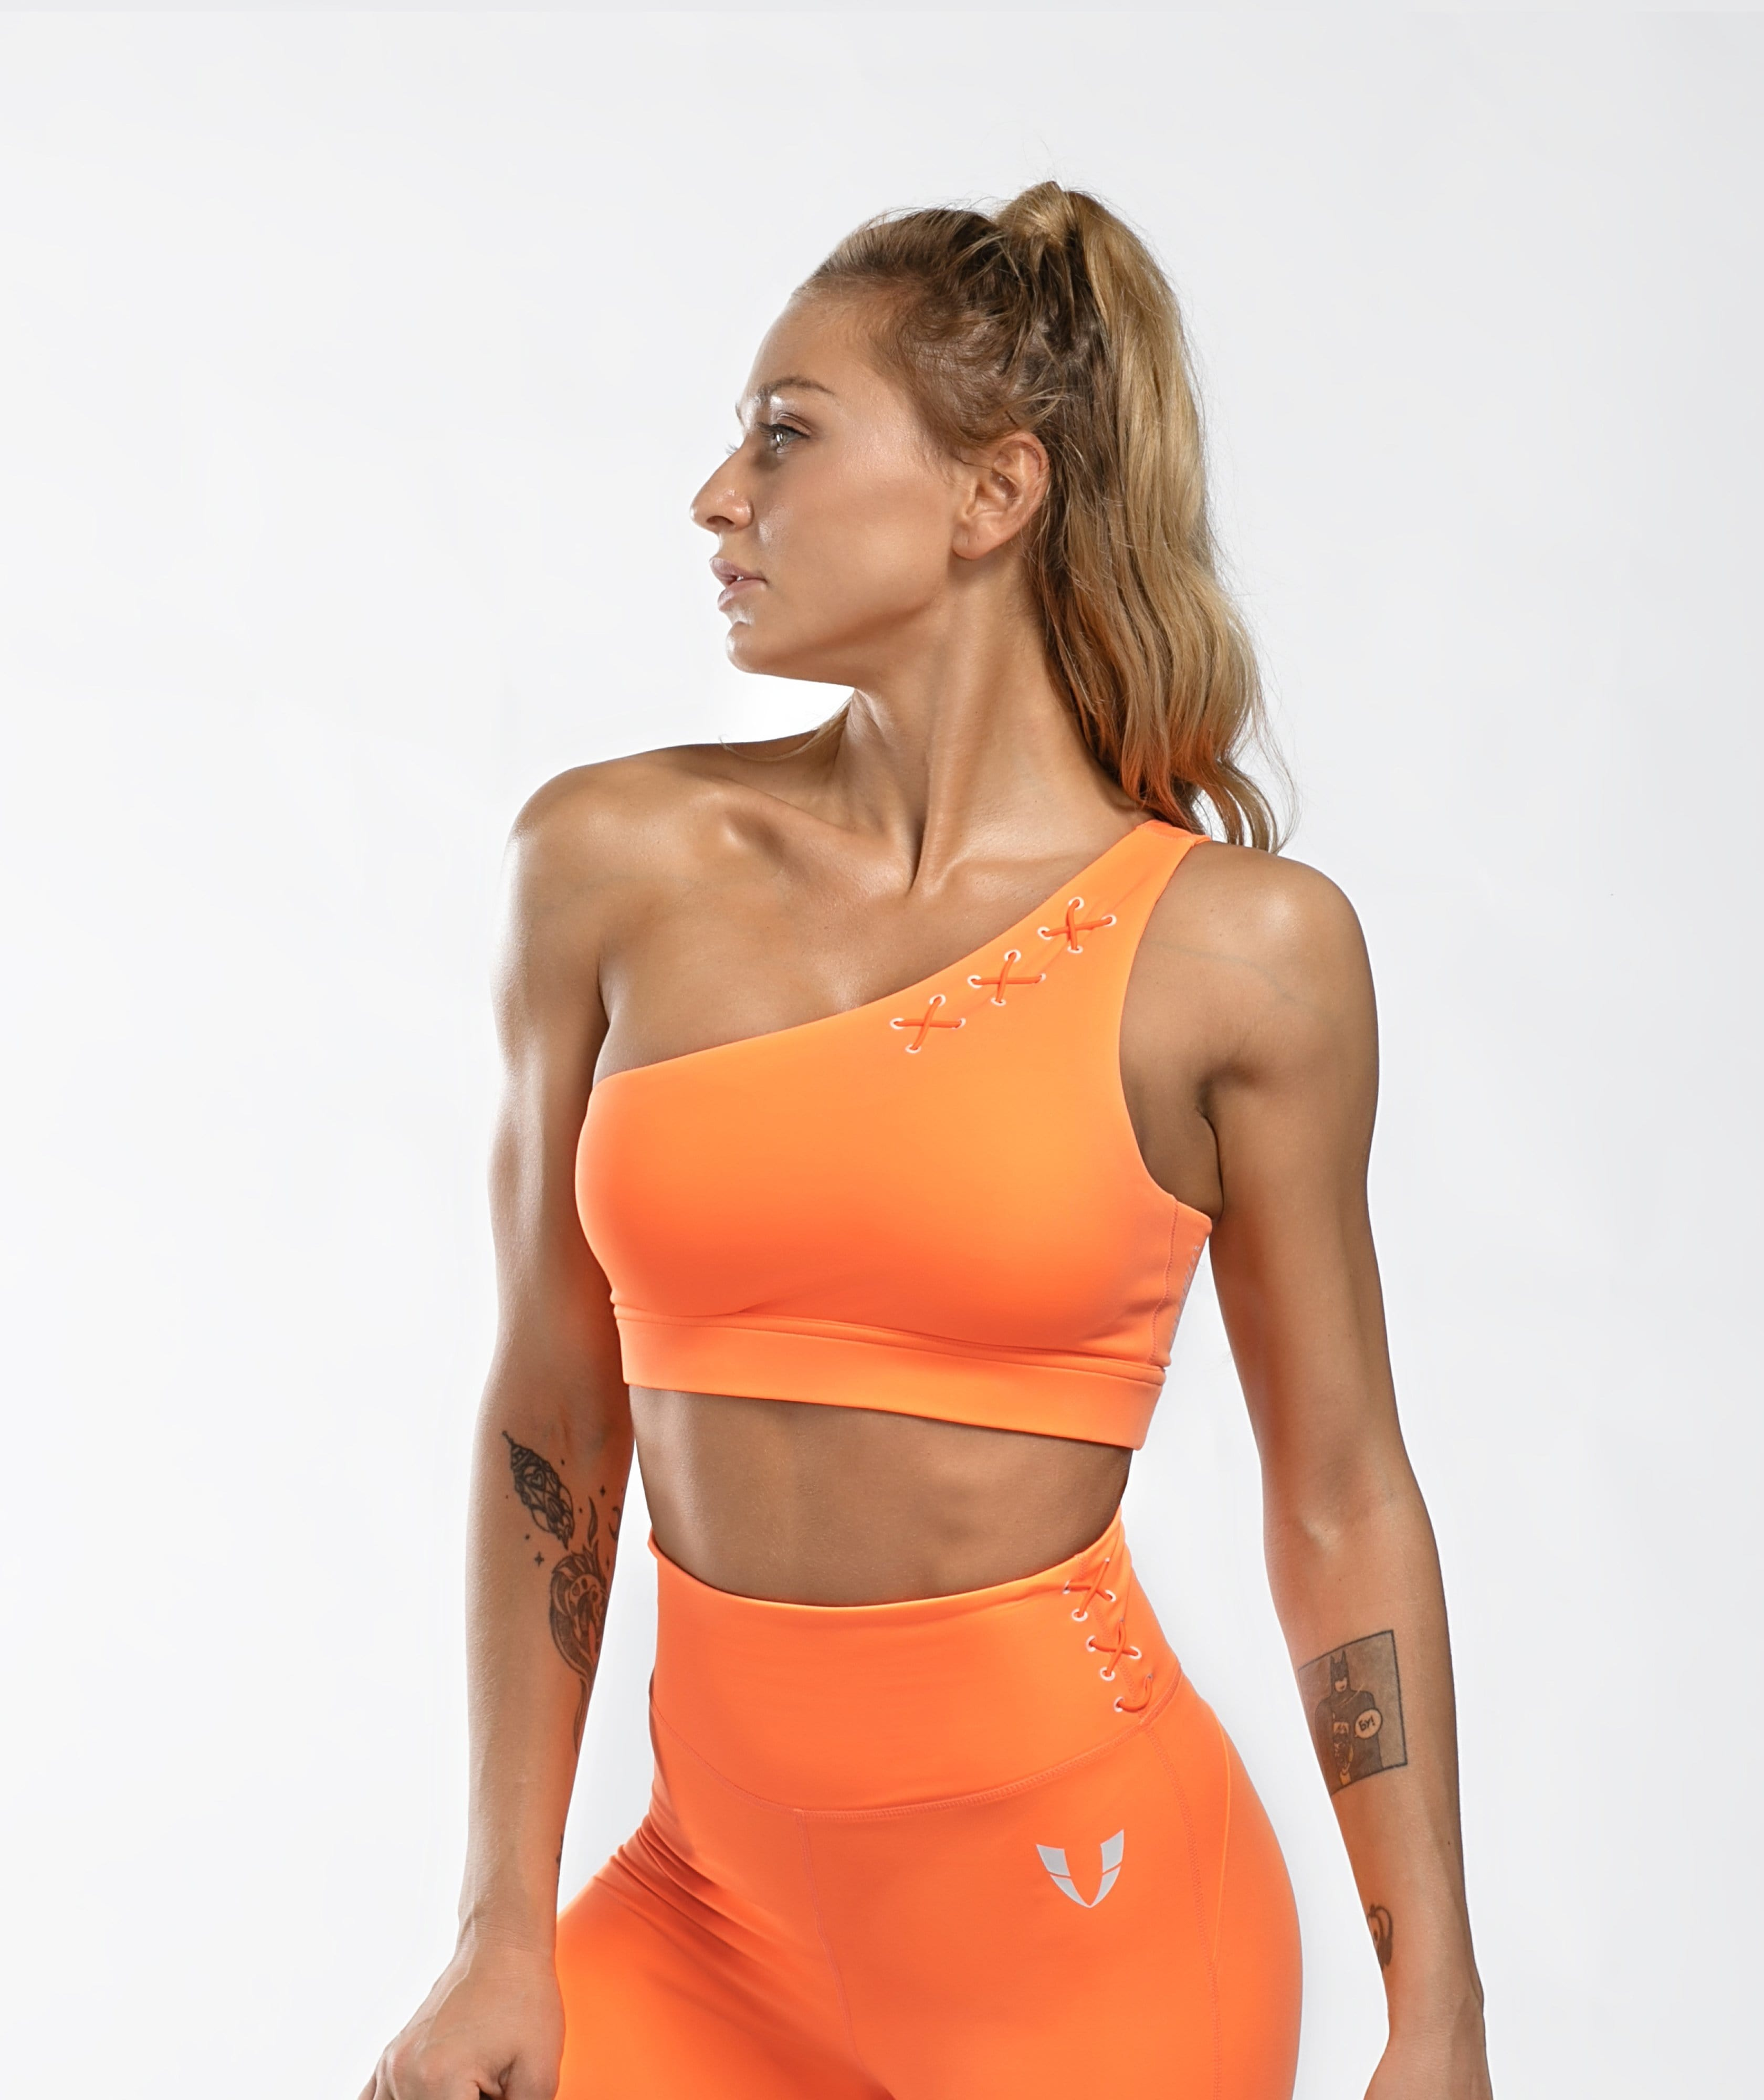 Honeypeach One-Shoulder Bra - Orange - Firm Abs Fitness